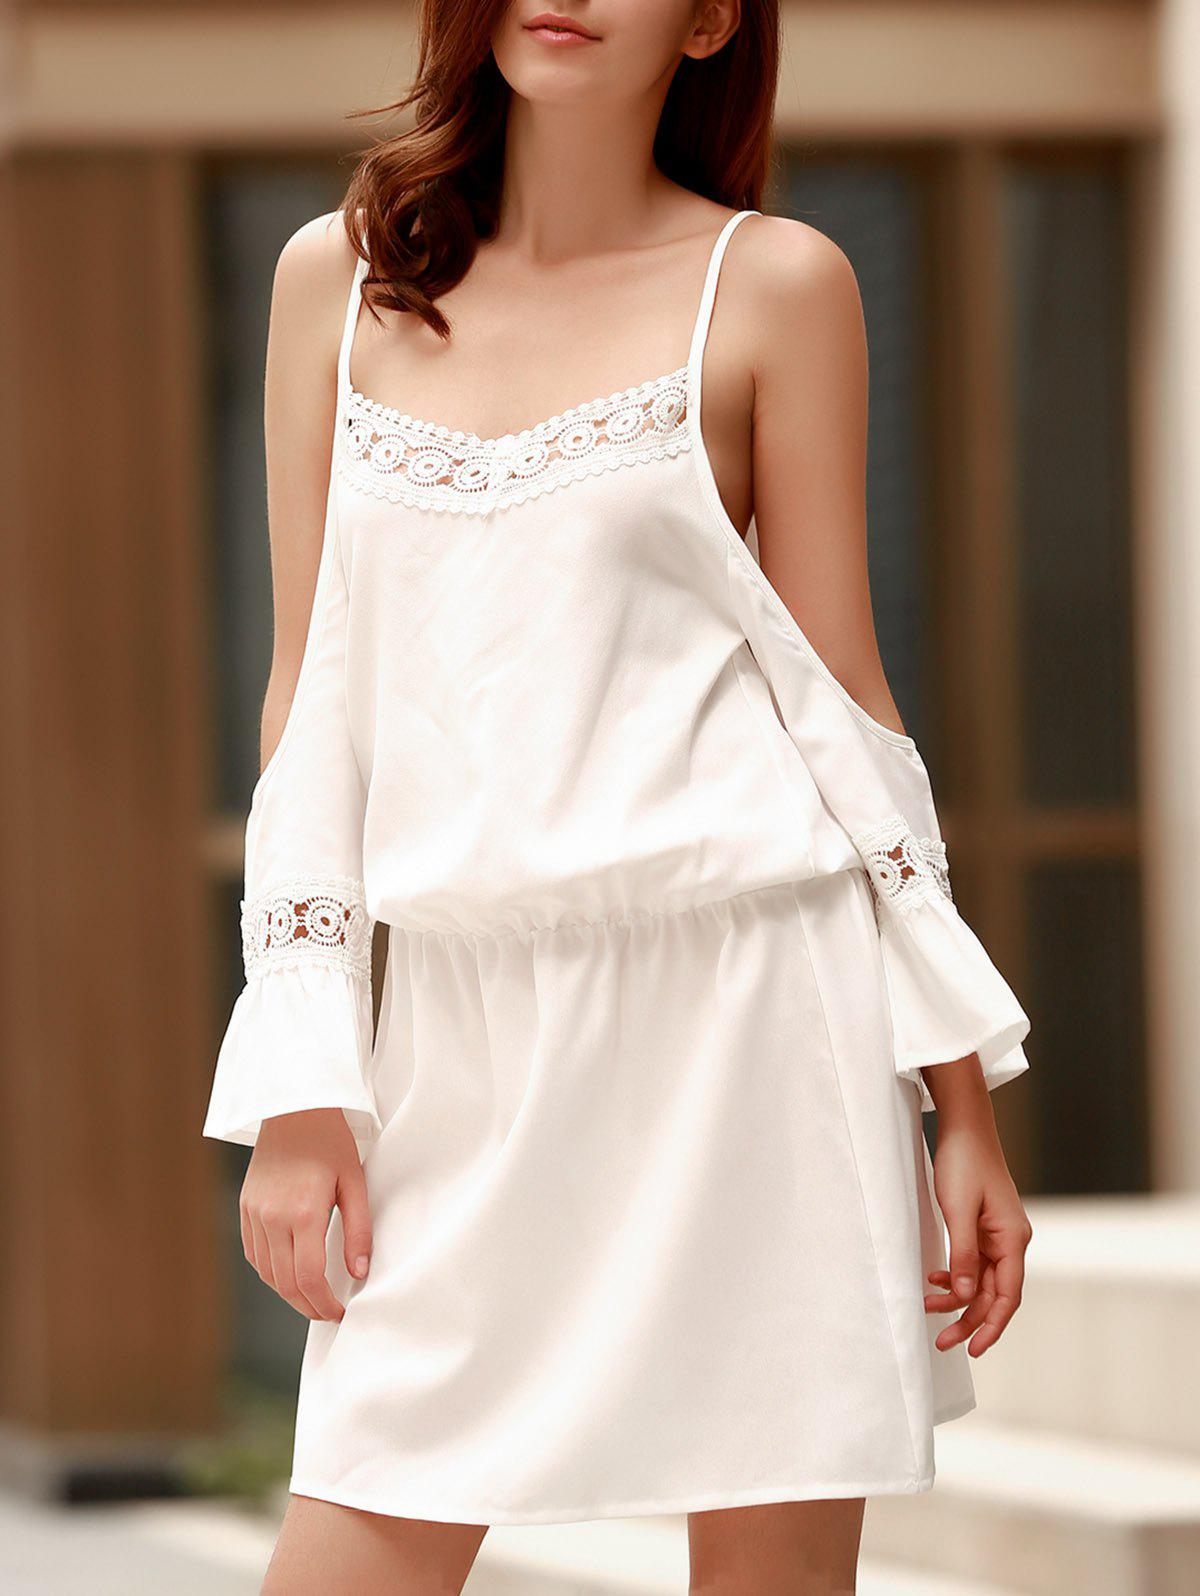 Sweet Women's Spaghetti Strap White Lace Spliced Dress - WHITE S